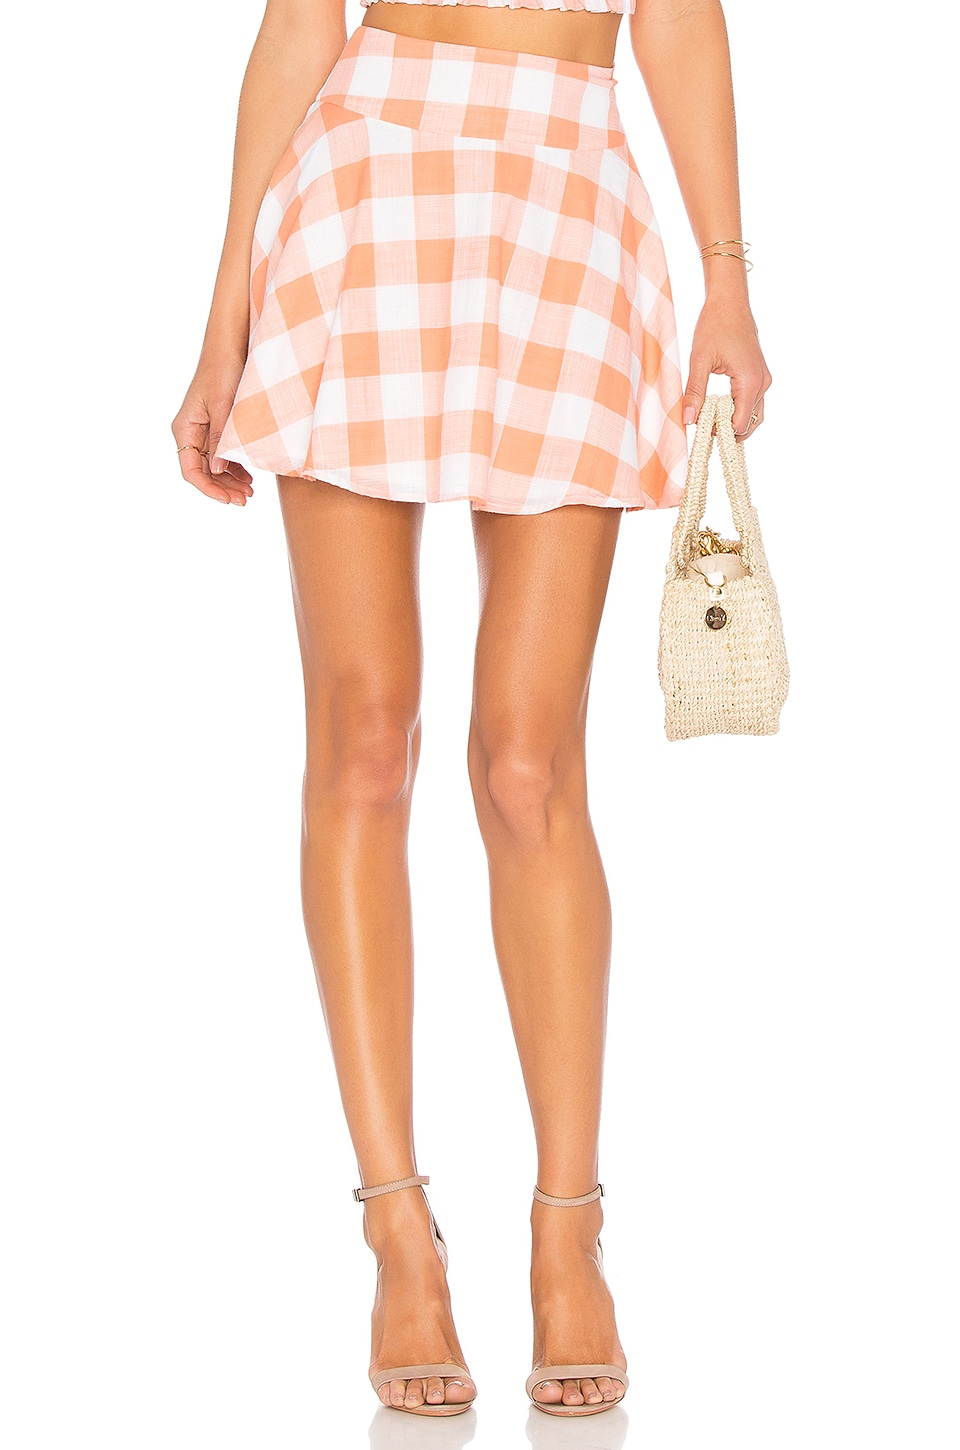 L'Academie The Circle Skirt in Sherbert Gingham